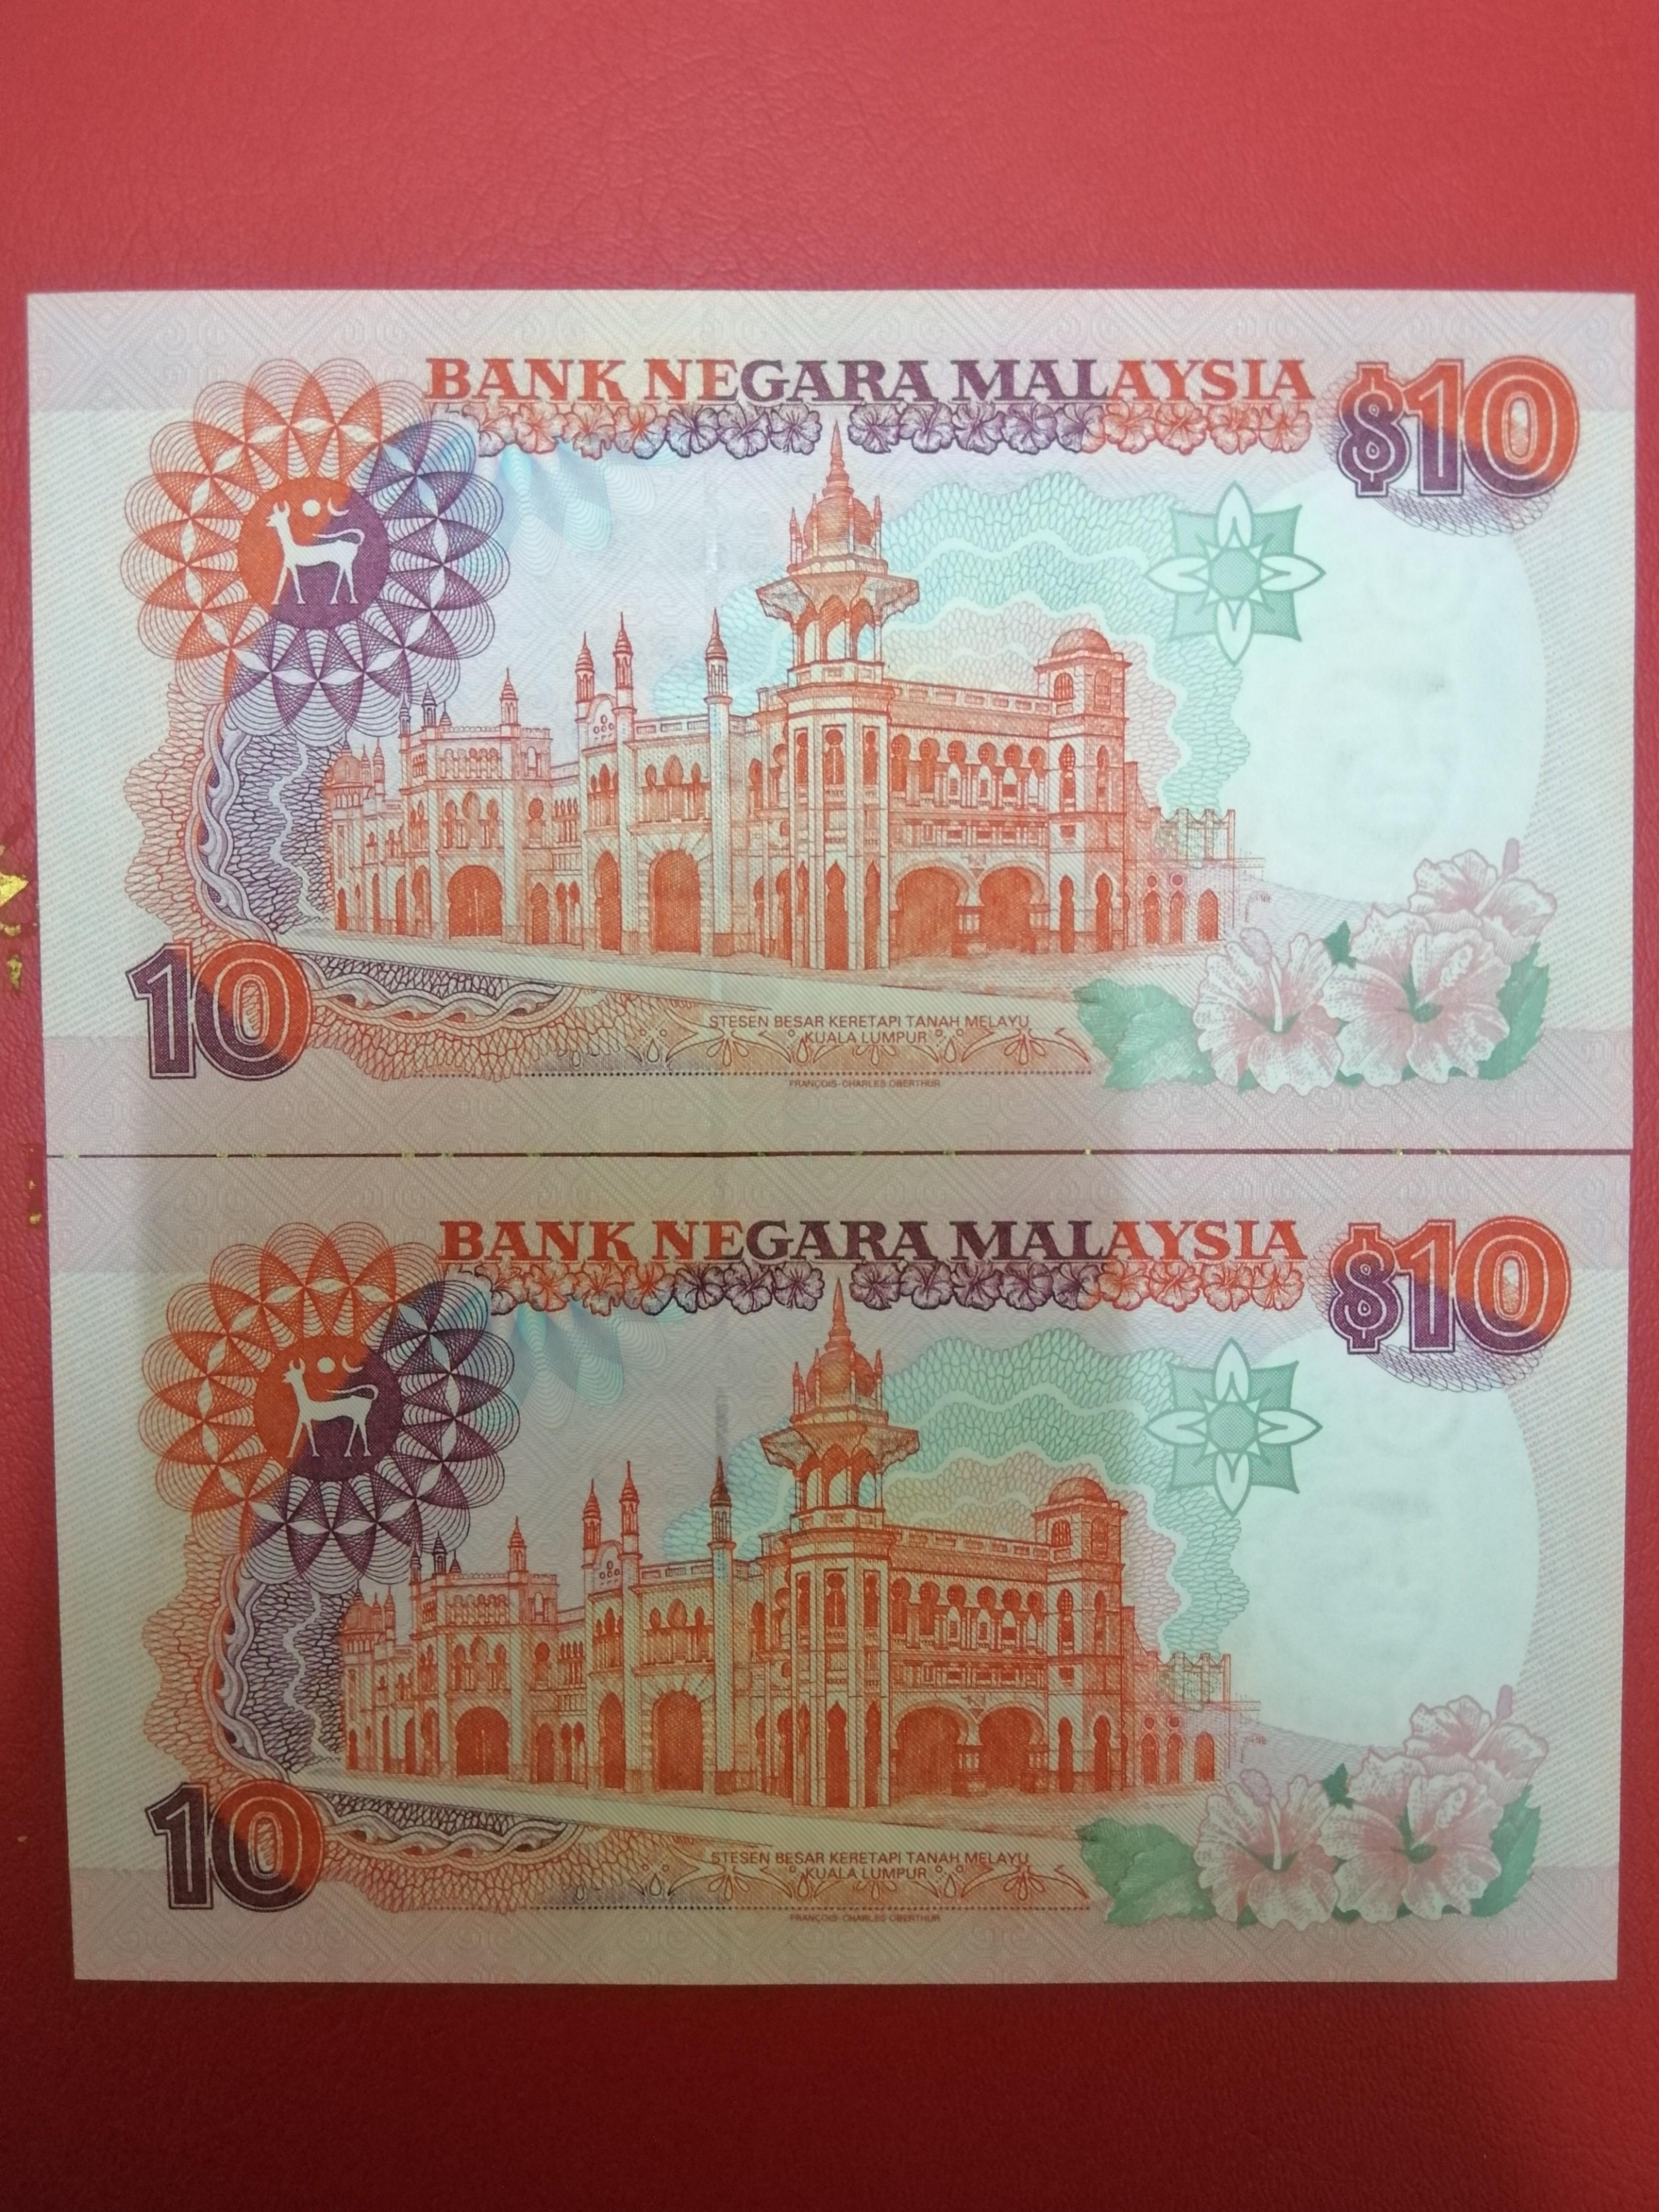 C) RM10 7th series - Pair Running nos YE 8754571 - 72 (UNC) on Carousell